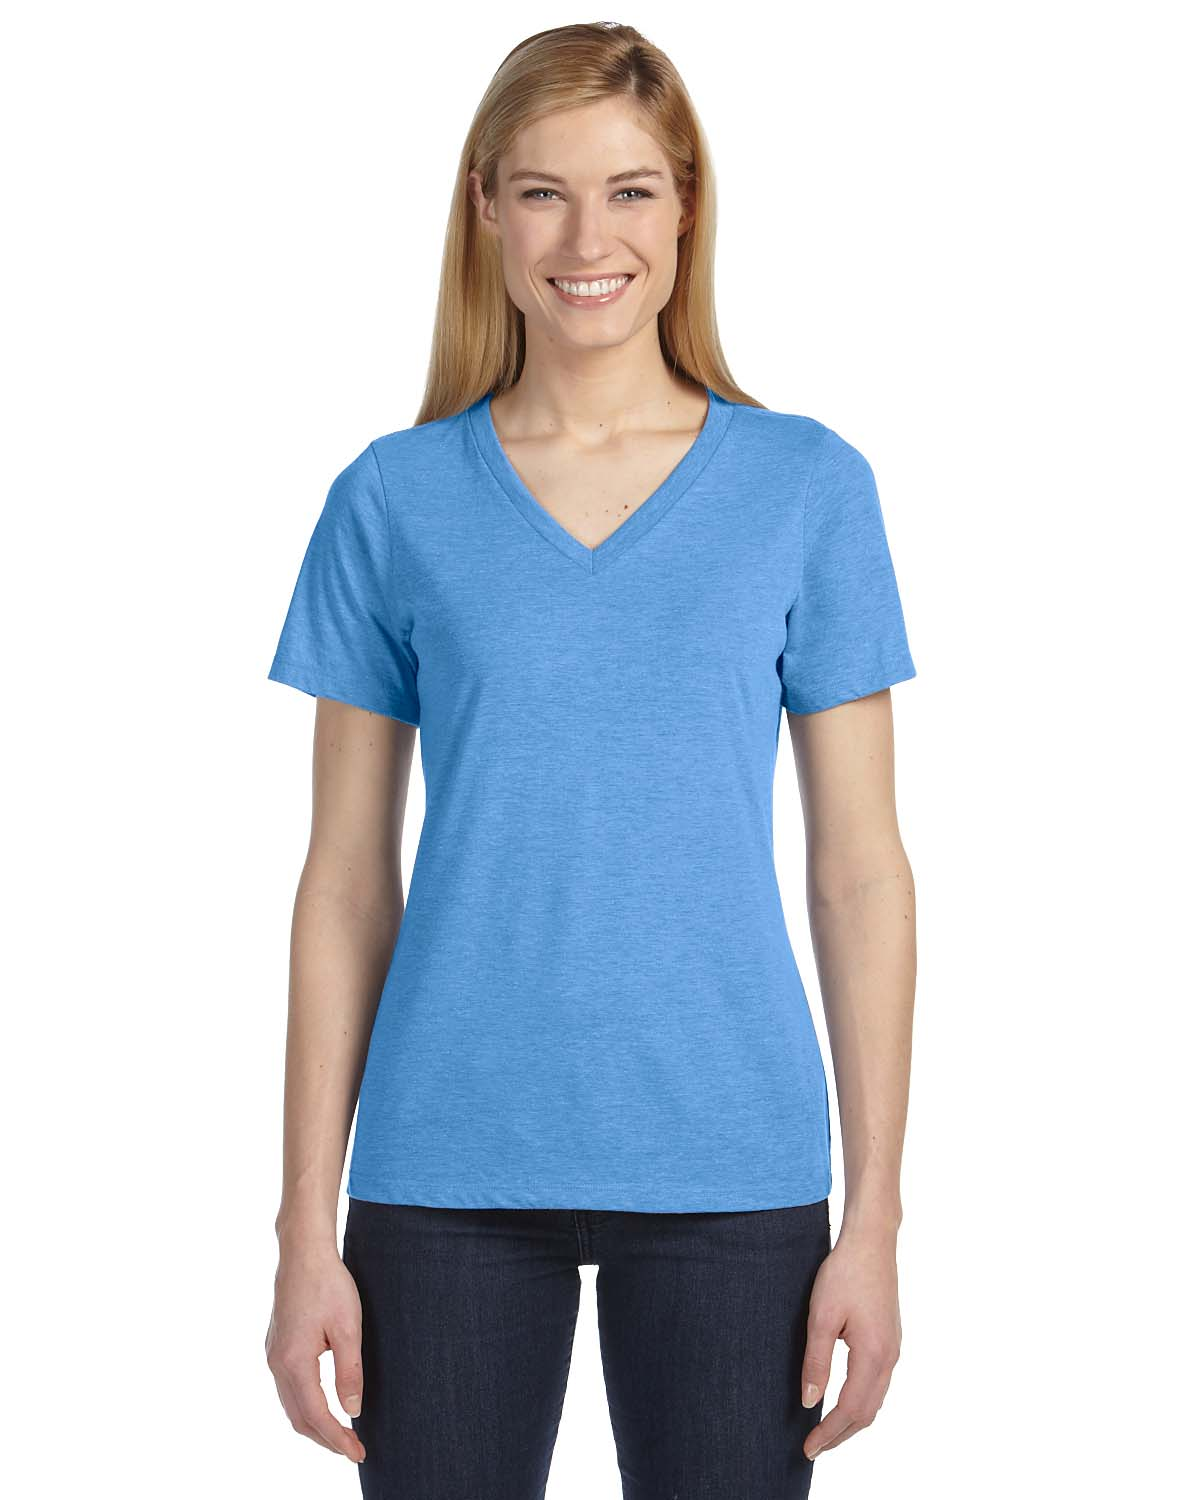 61579748 Easton Fire Fundraiser - Product: Ladies' Relaxed Jersey Short-Sleeve V-Neck  T-Shirt